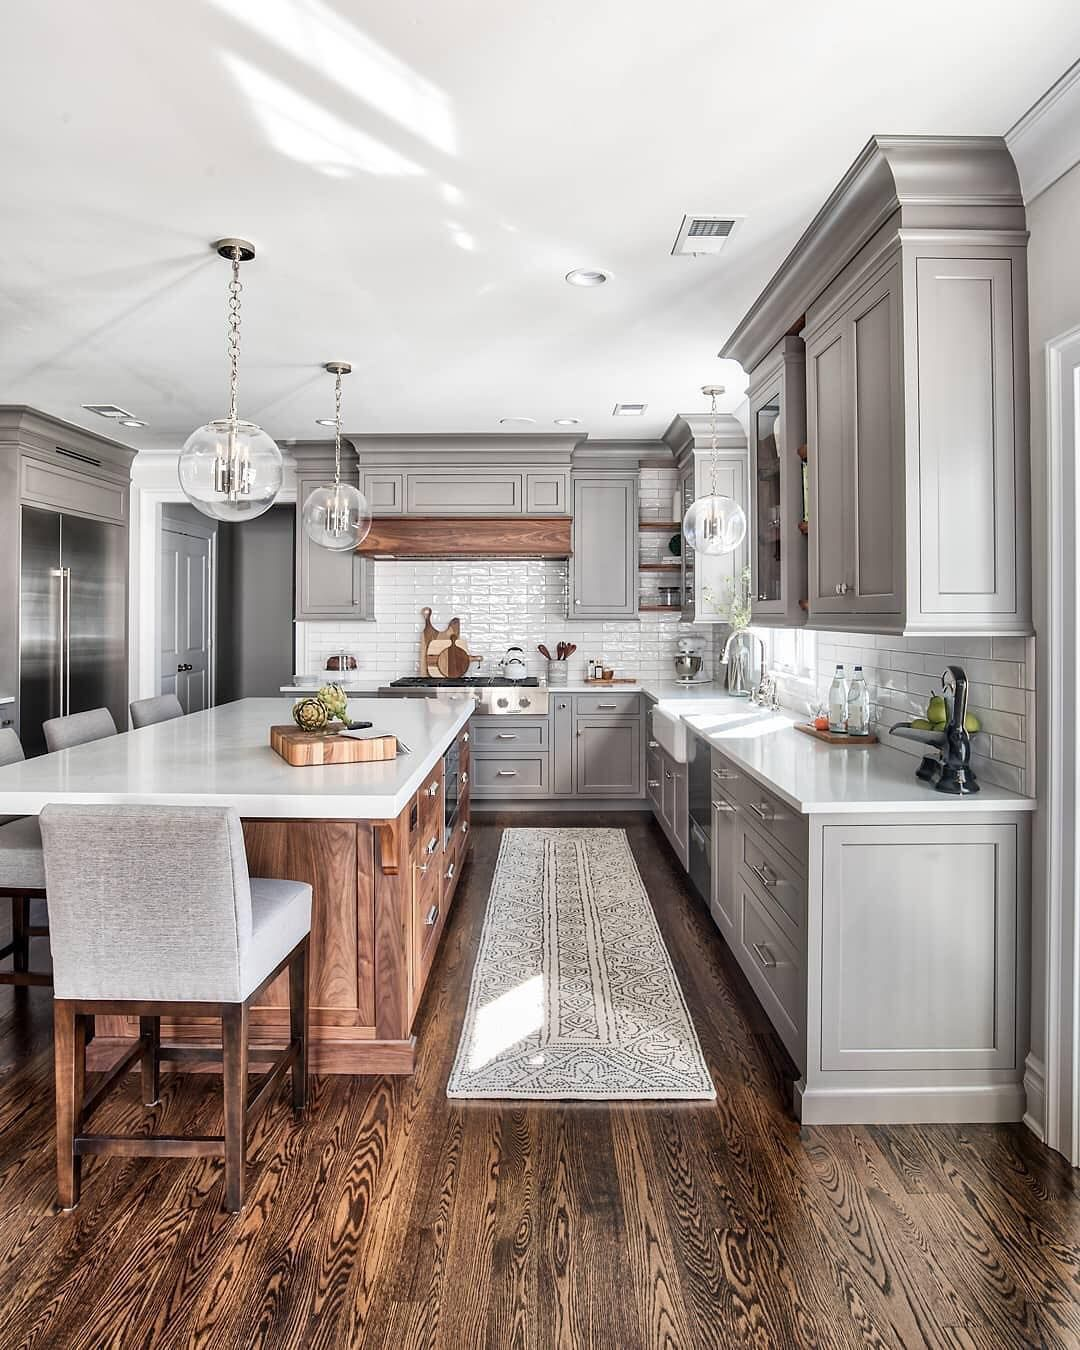 remarkable summer kitchen design ideas | ☑️ 10 Remarkable Kitchen Designs | take a look at these ...